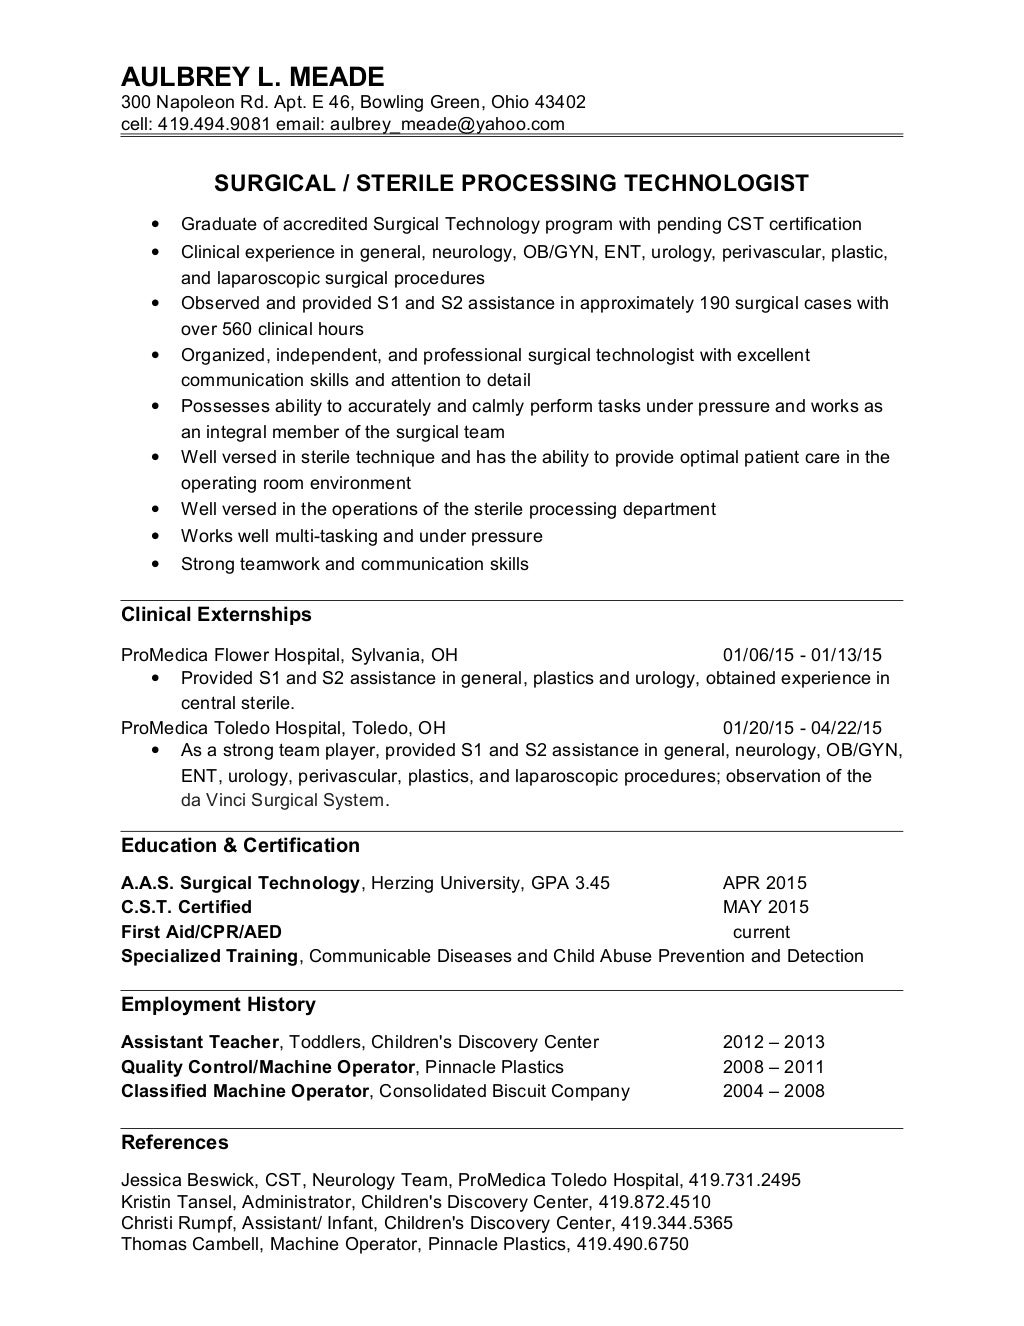 aulbrey meade surgical tech resume - Surgical Technologist Resume